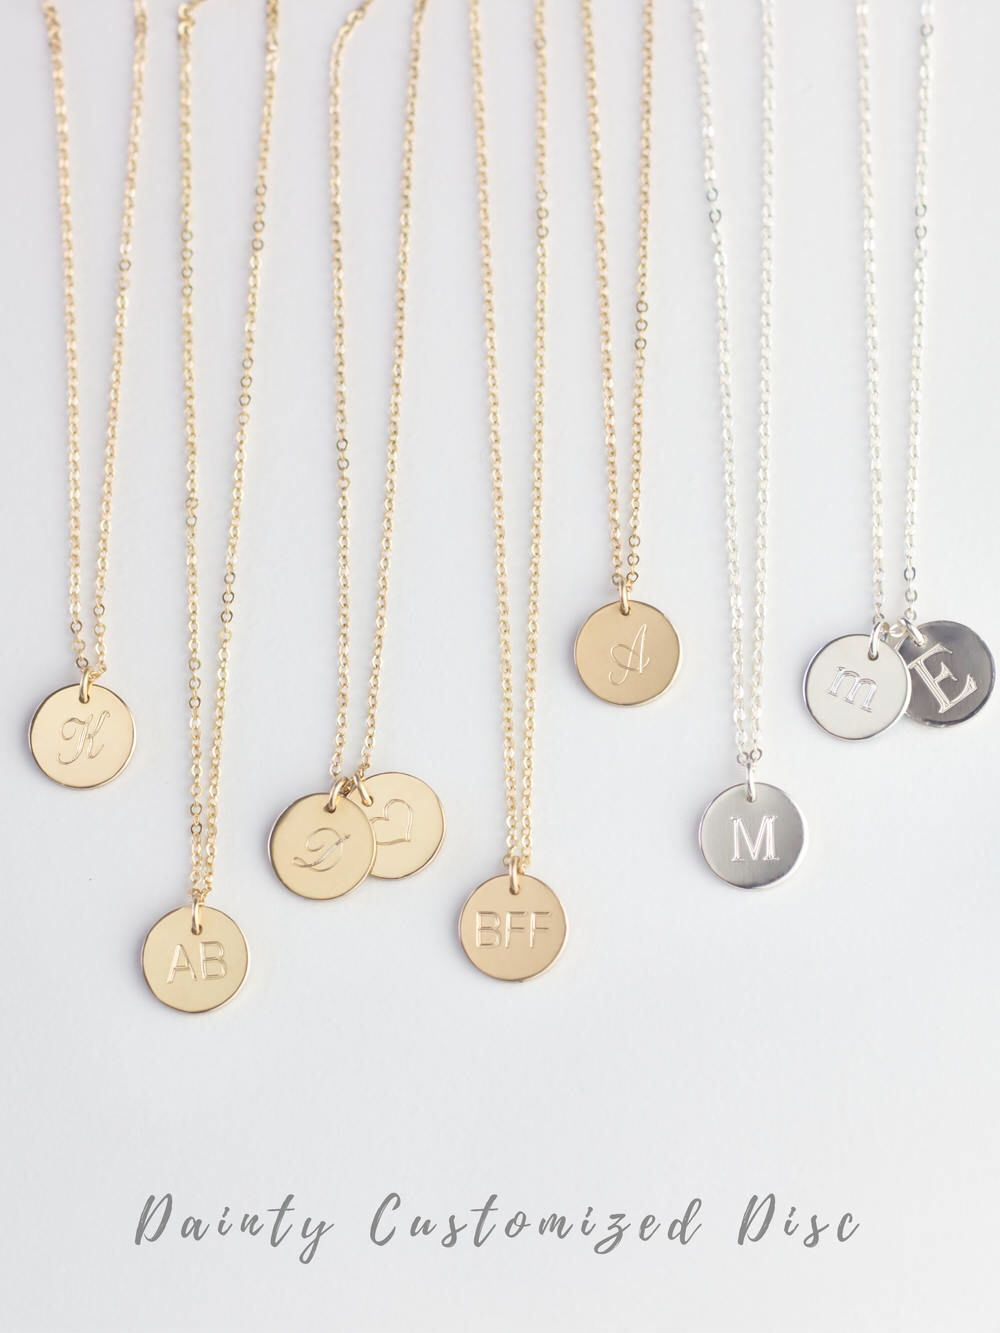 18 chain font 3 initial pendant gold initial necklace sterling 18 chain font 3 initial pendant gold initial necklace sterling silver initial necklace mozeypictures Image collections